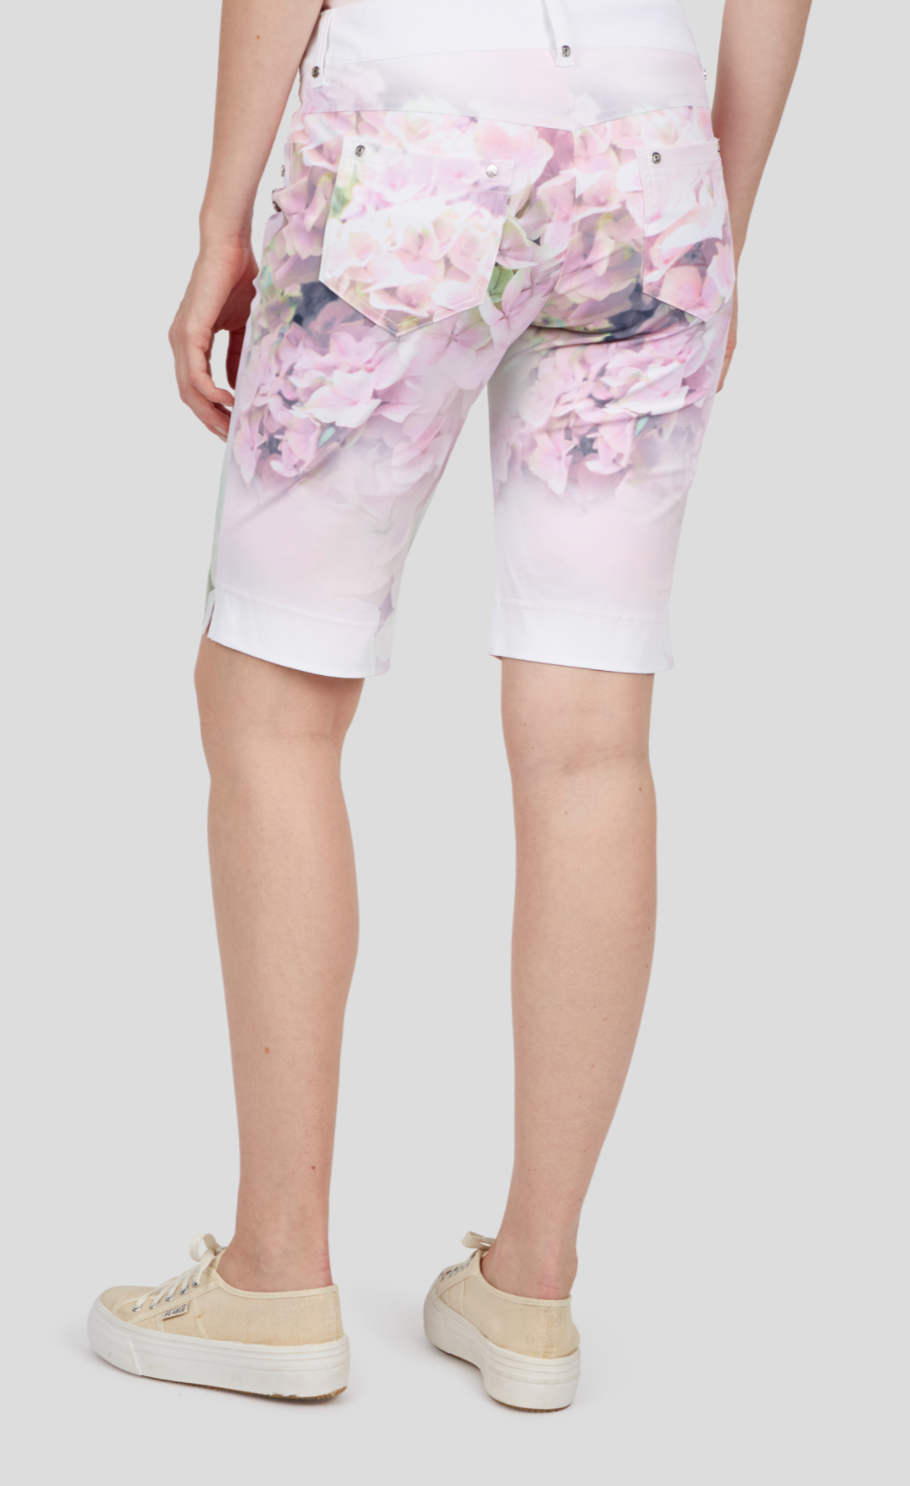 Digital Print Shorts - Sonia's Runway